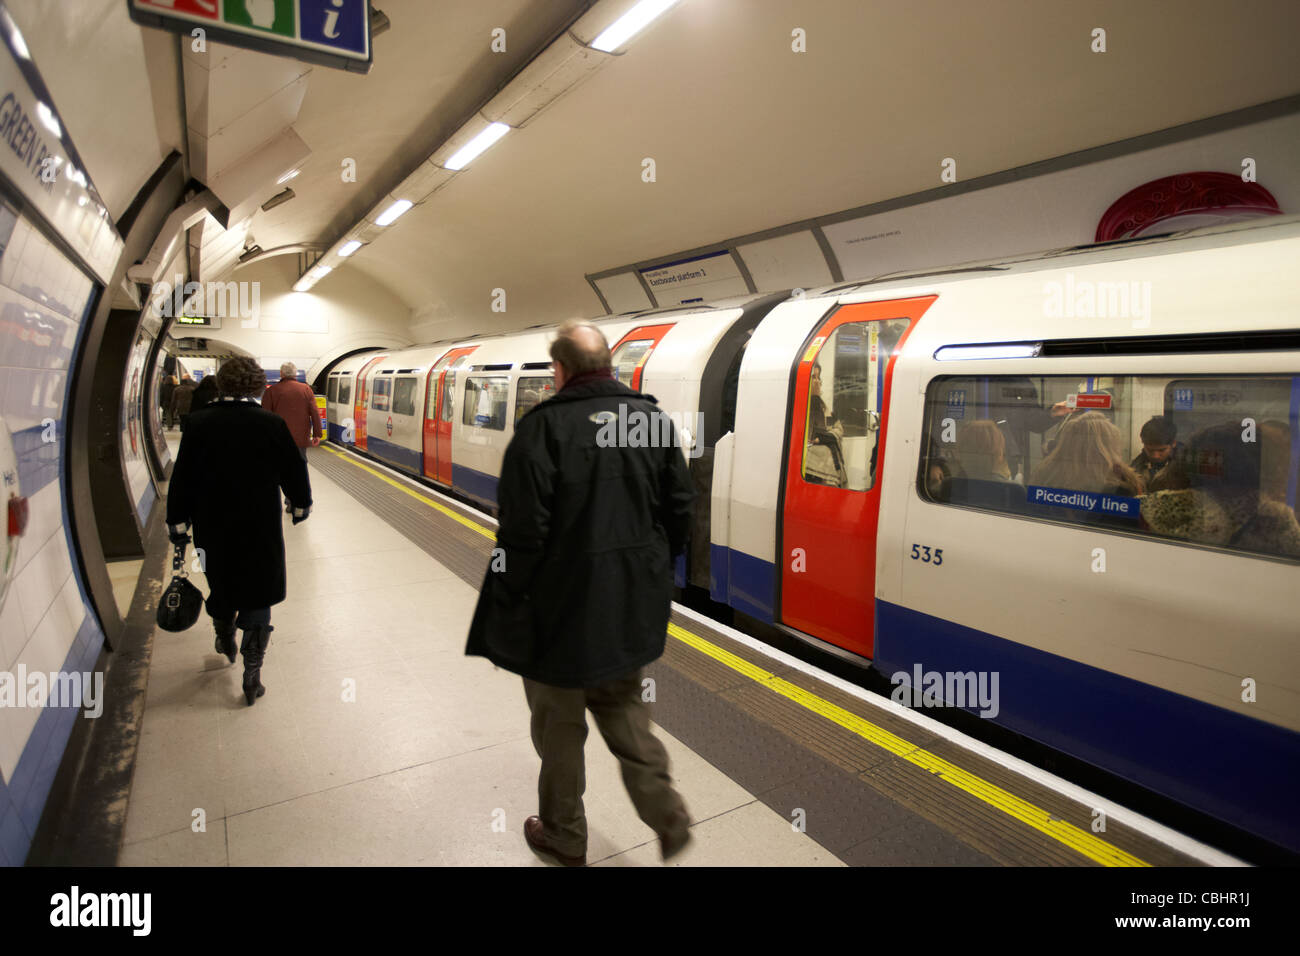 green park london underground station with piccadilly line train at platform england united kingdom uk - Stock Image